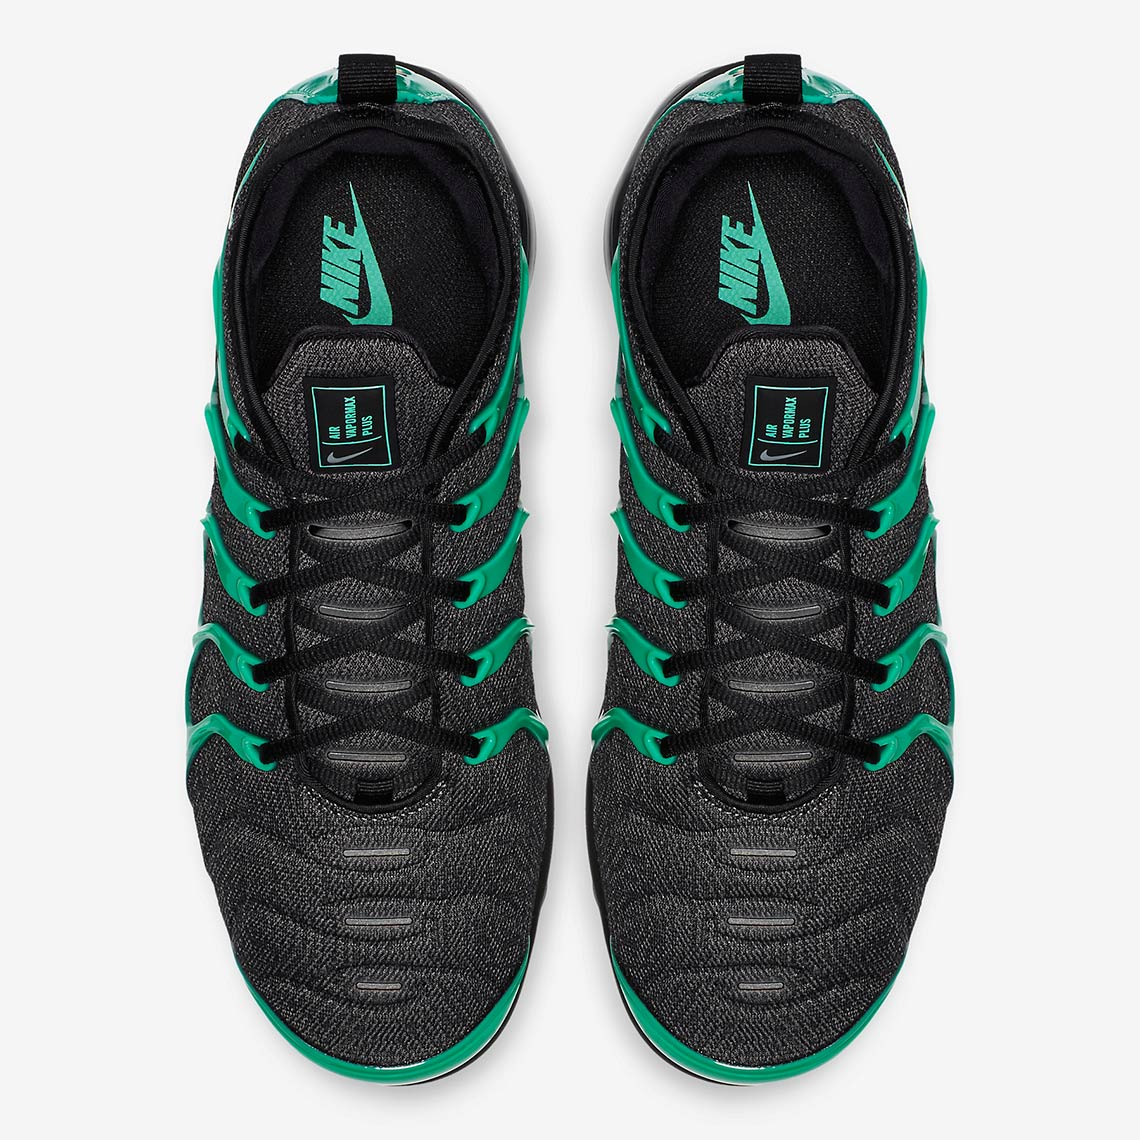 ready for the nfl season kickoff tonight this nike vapormax plus was  definitely made with eagles cf6f96645